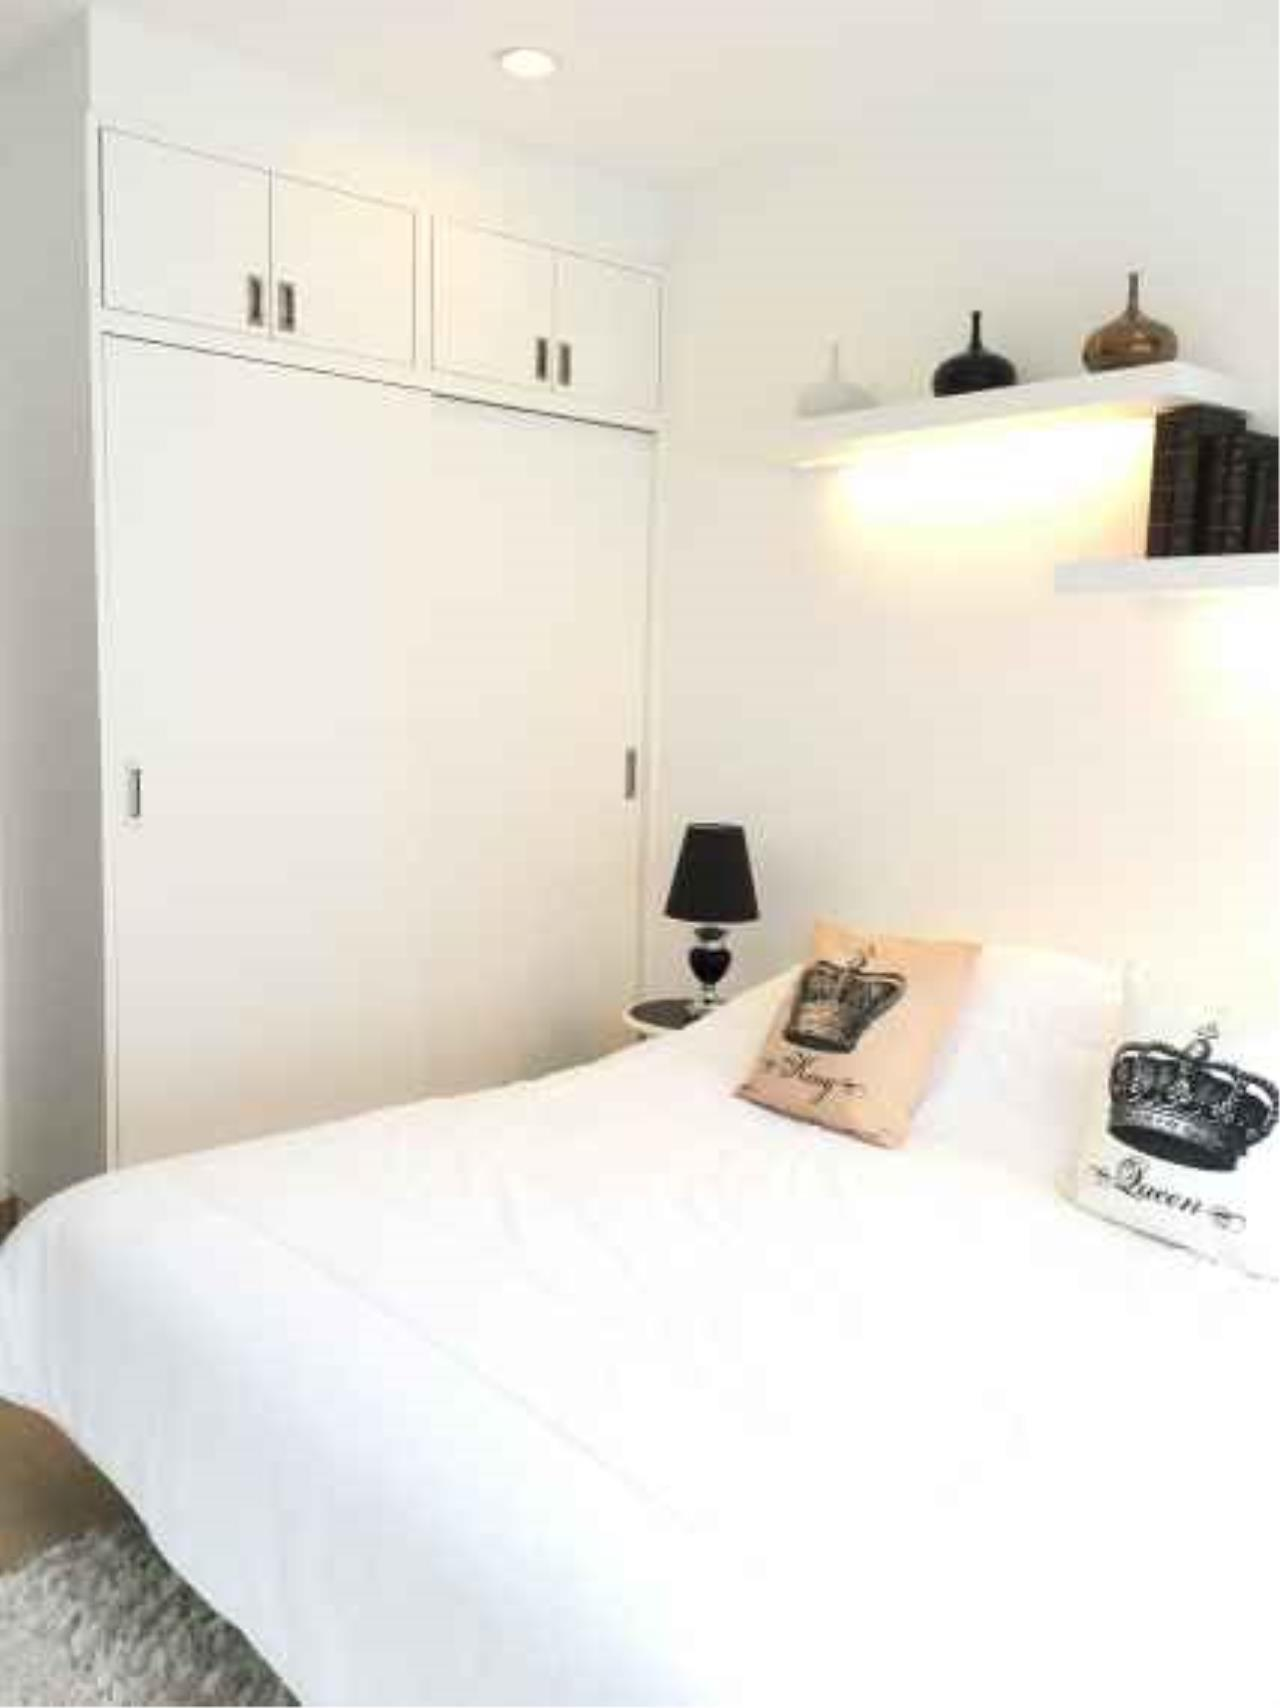 REAL Phuket  Agency's The Happy Place - Modern 2-Bedroom Duplex House in Thalang 14